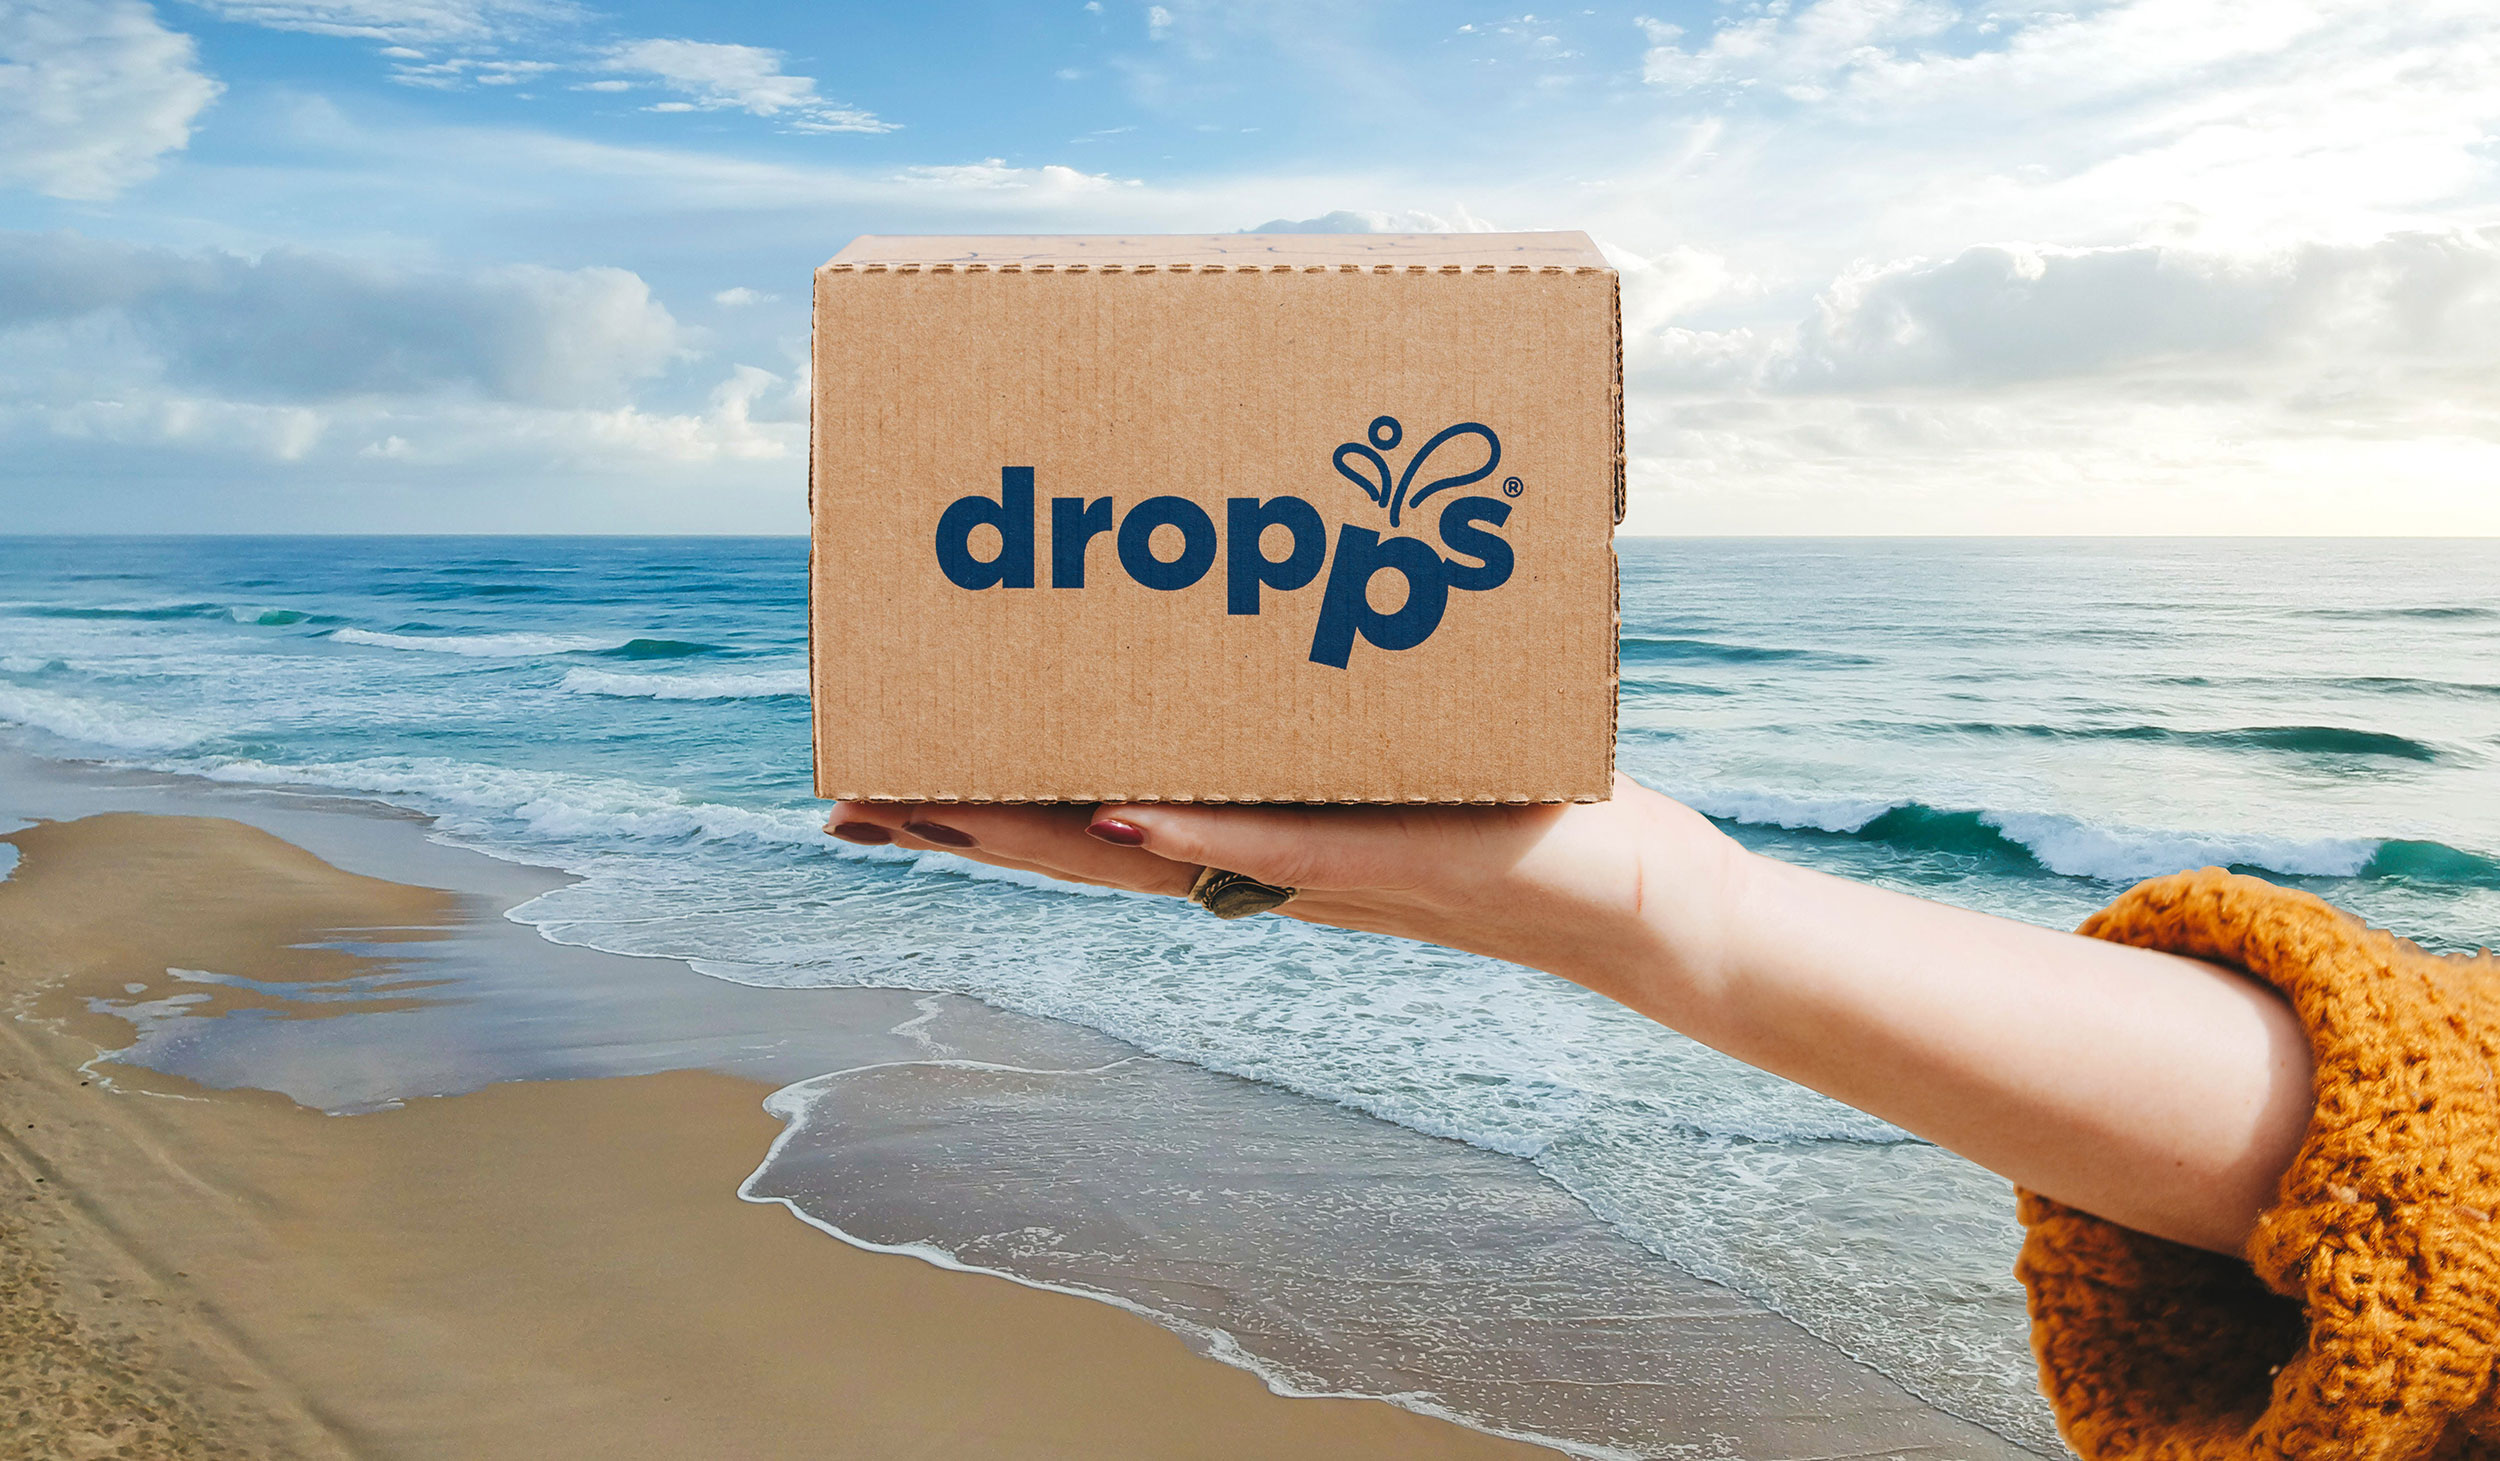 Household cleaning products brand Dropps is known for pairing recyclable cartons with dissolvable pods to deliver a more sustainably packaged experience direct to customers' homes.